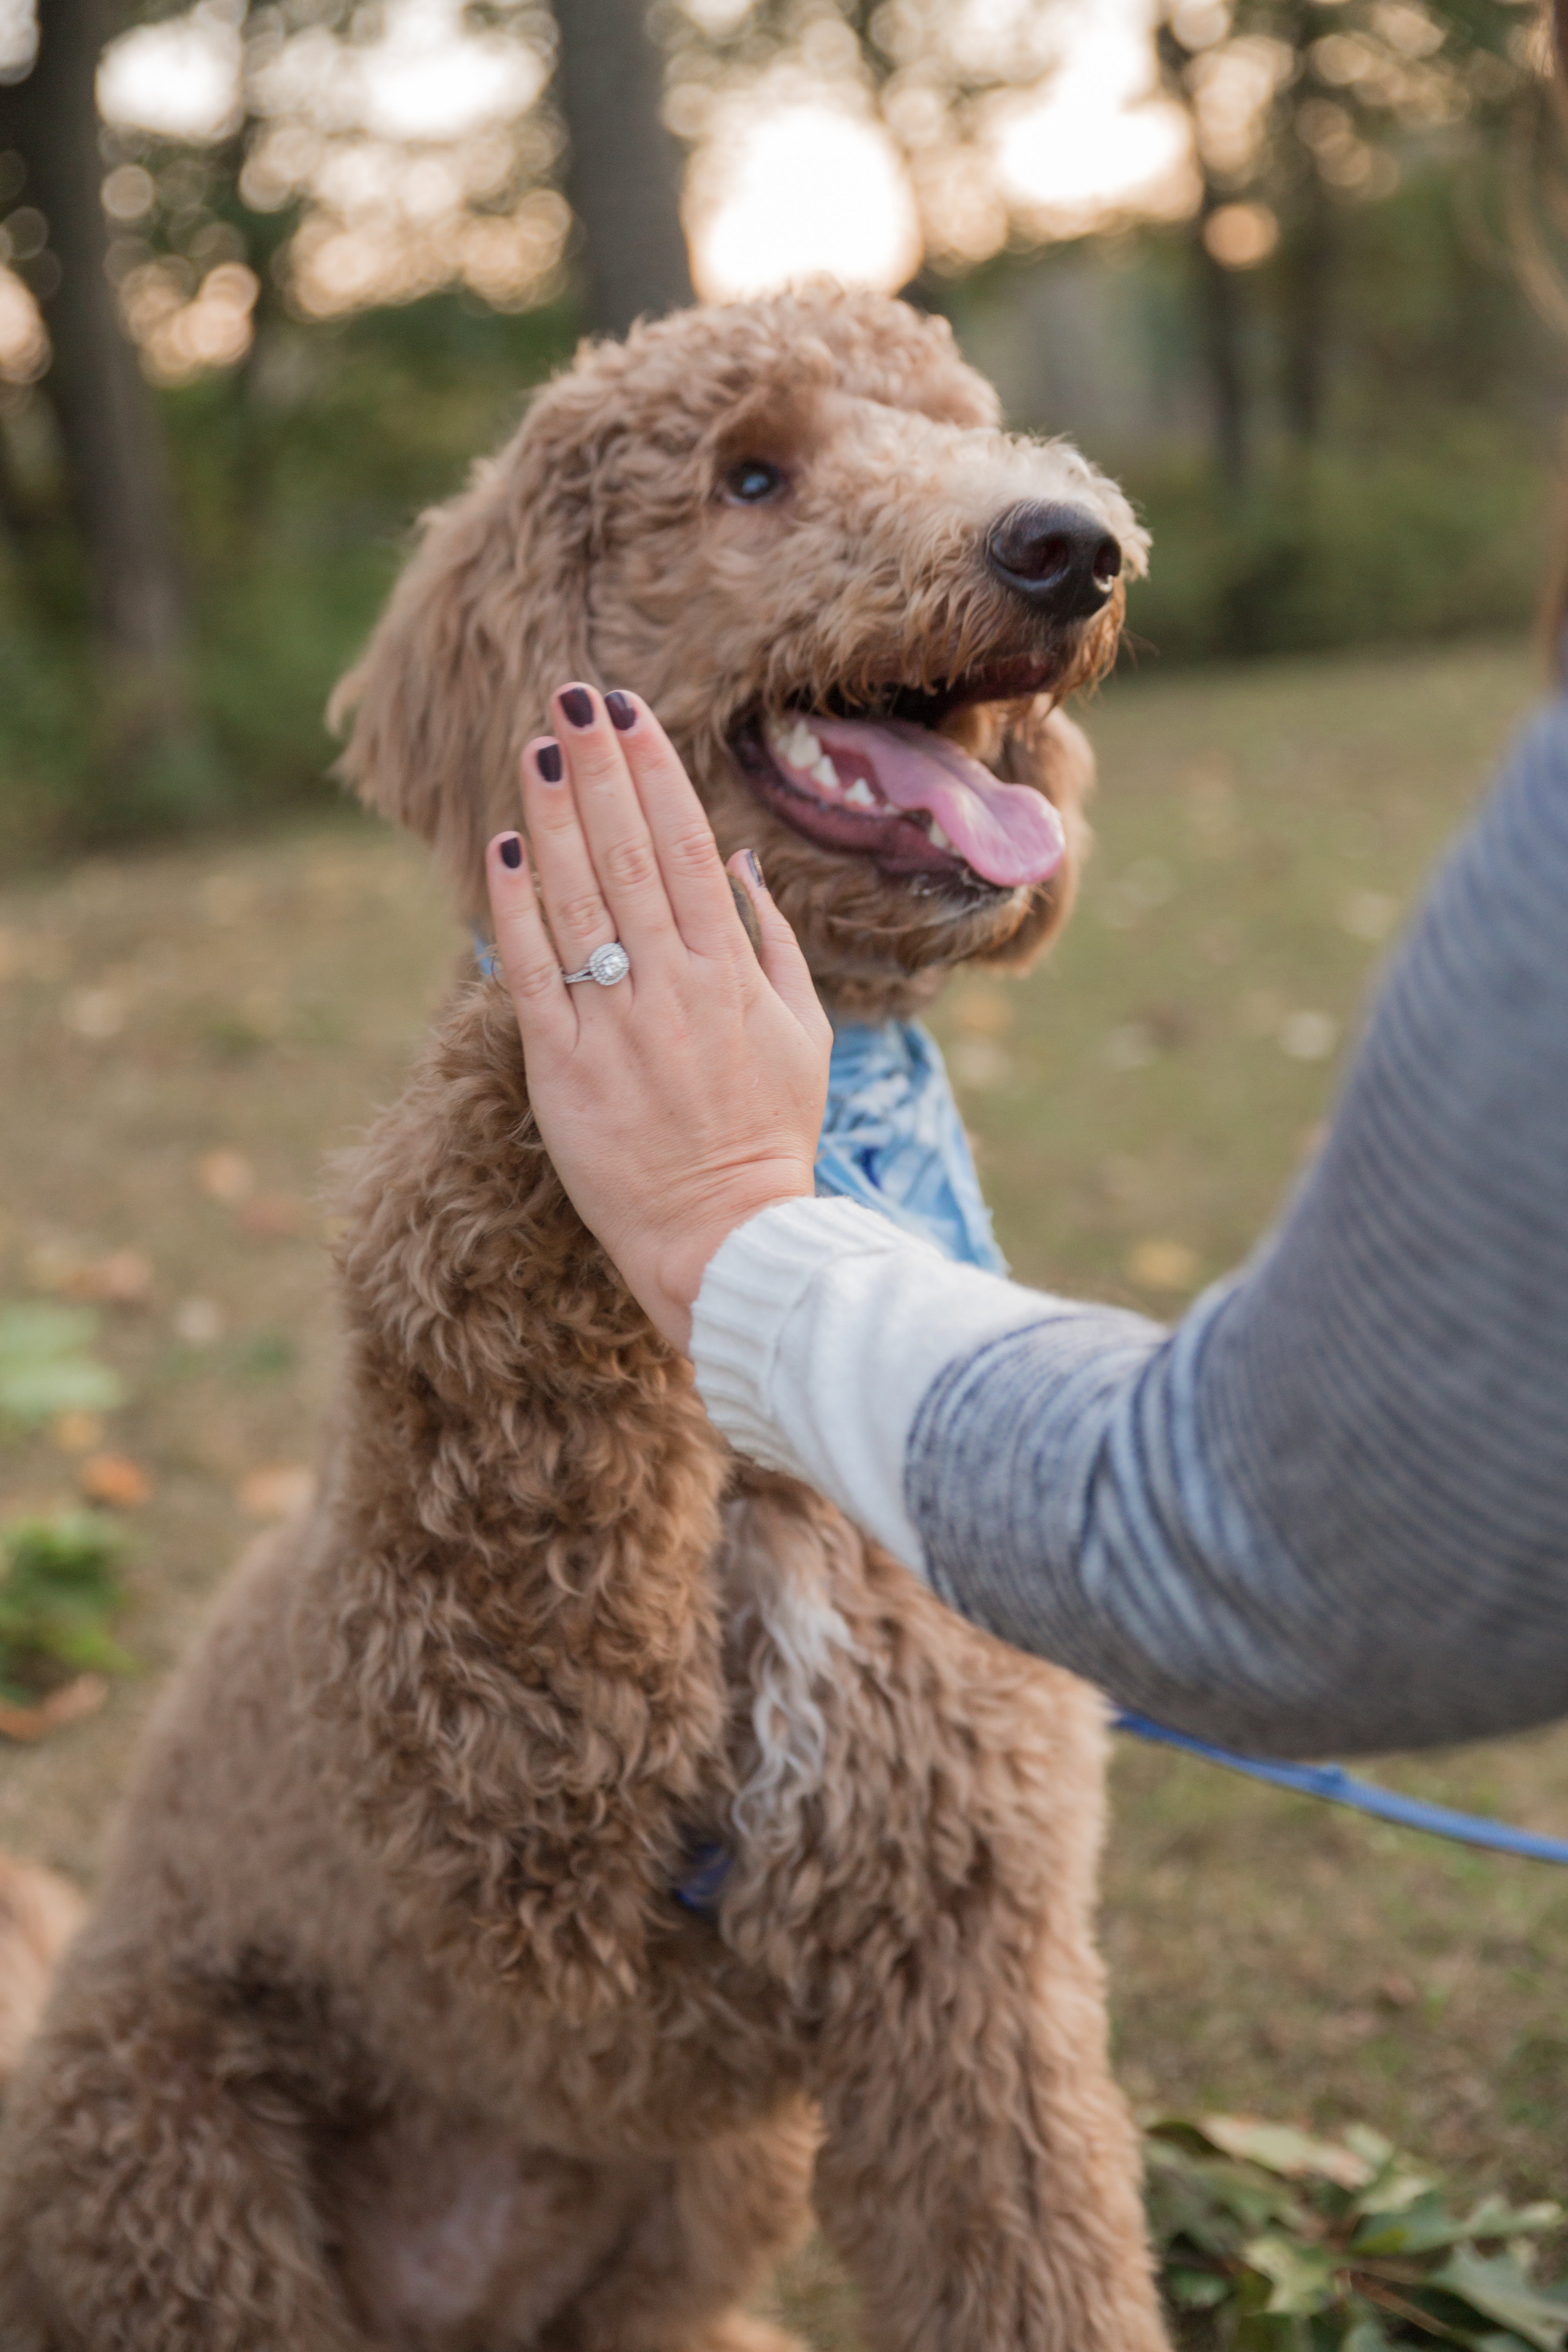 engagement ring and dog